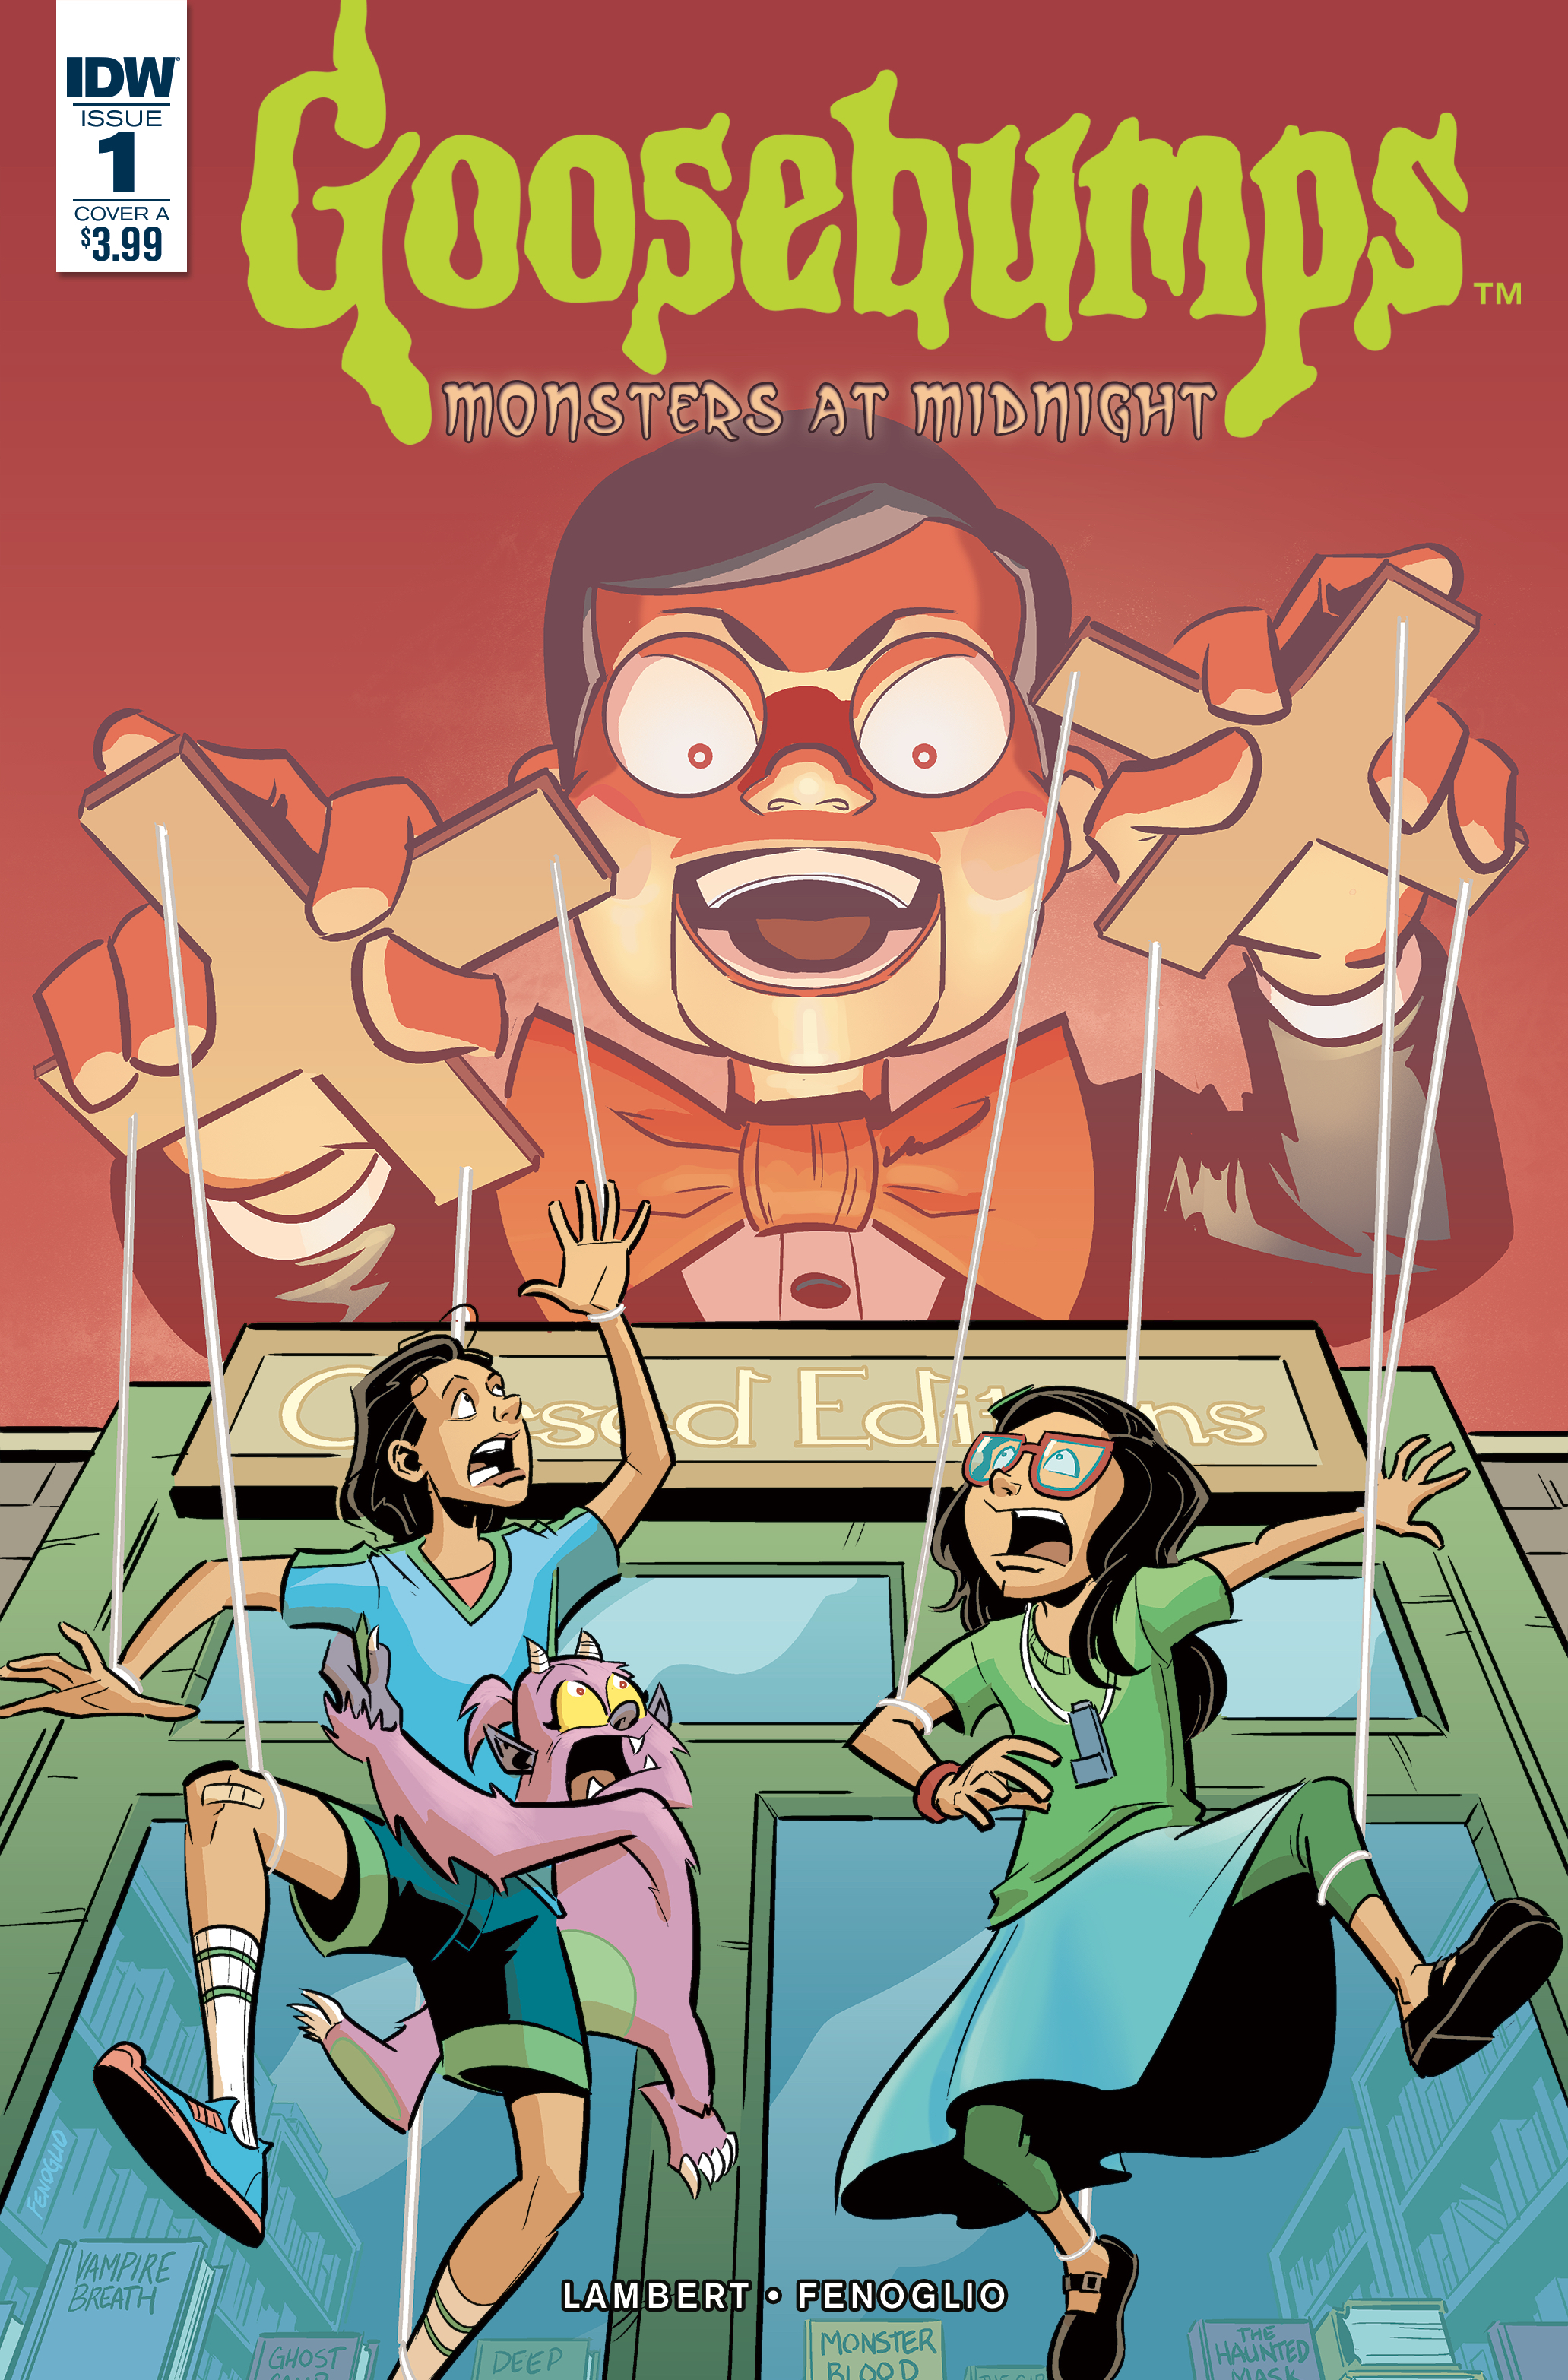 GOOSEBUMPS MONSTERS AT MIDNIGHT #1